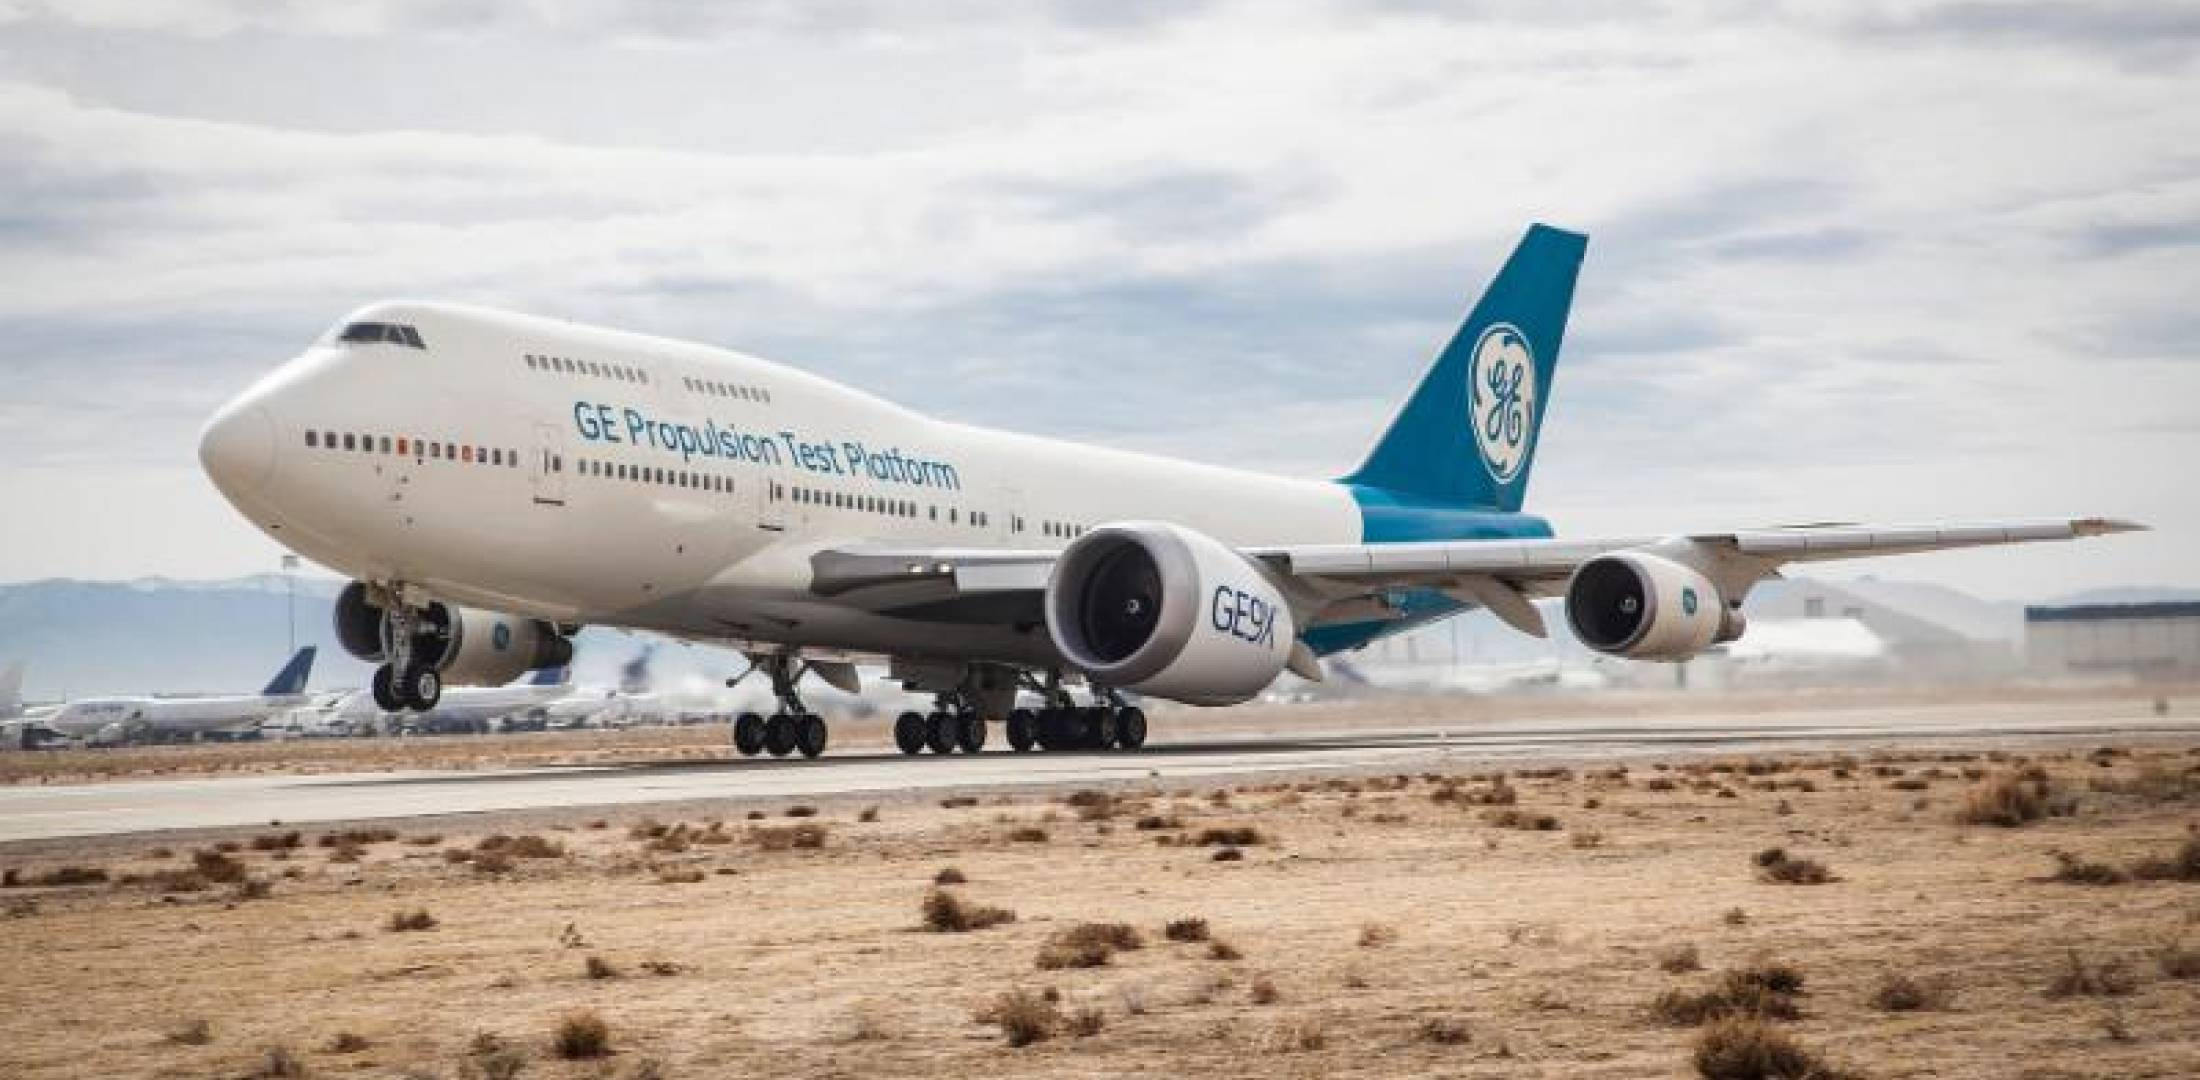 GE Aviation's Boeing 747 testbed takes off with a GE9X attached to the  inner pylon of its left wing from Victorville, California. (Photo: GE  Aviation)